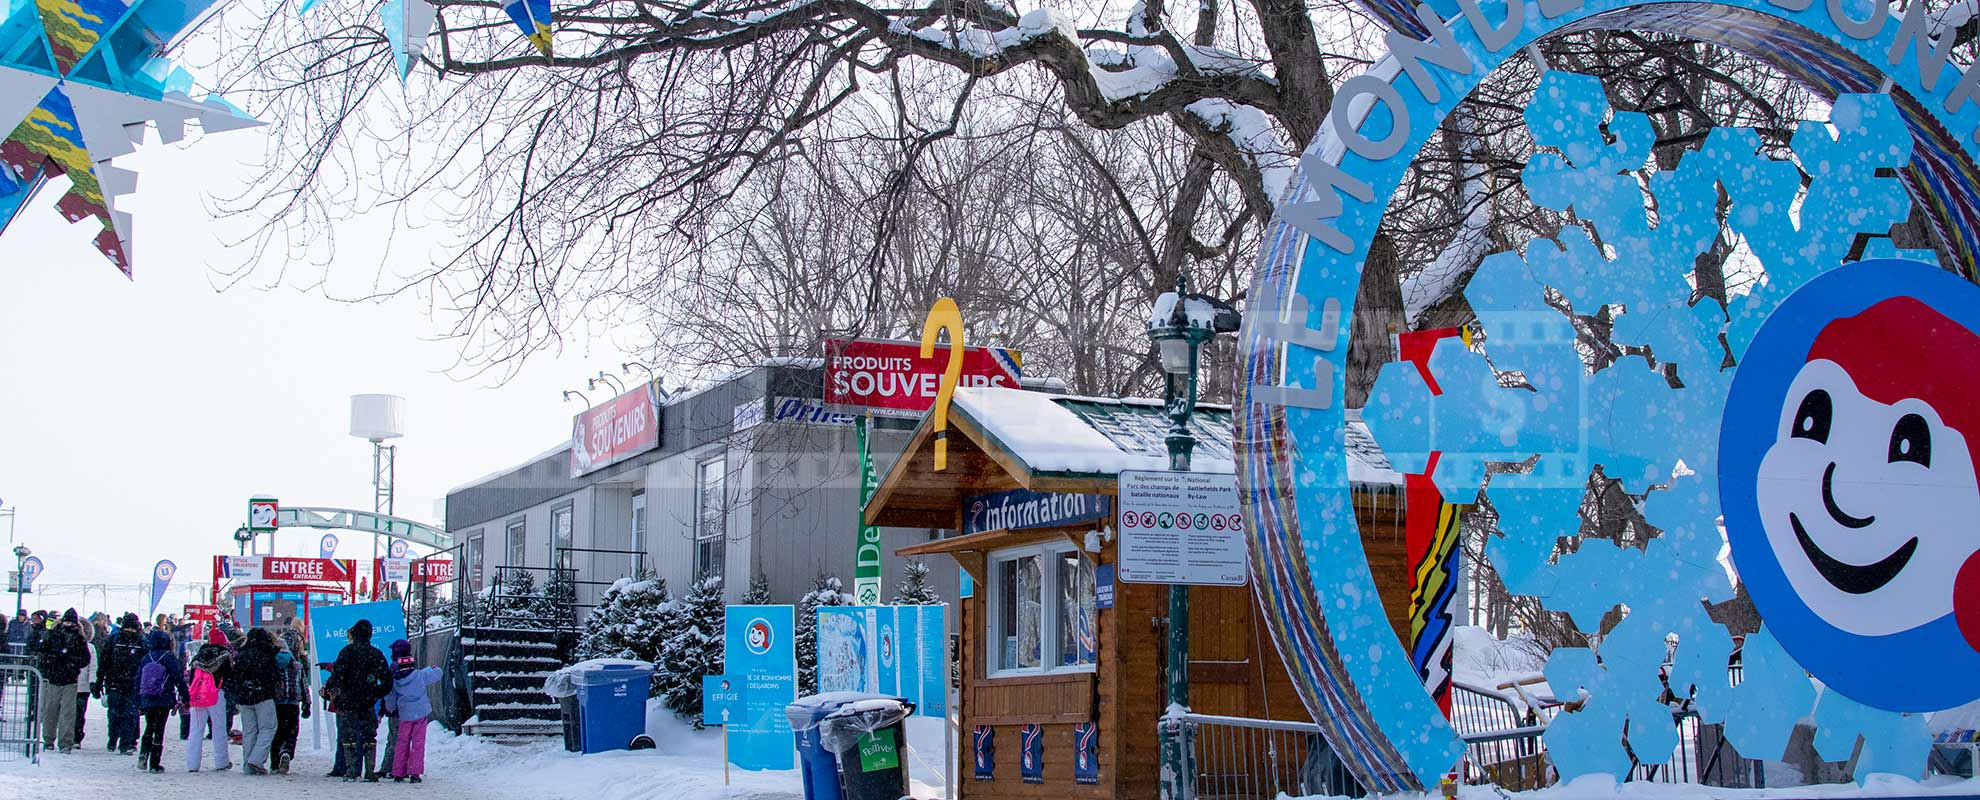 Quebec winter carnival entrance